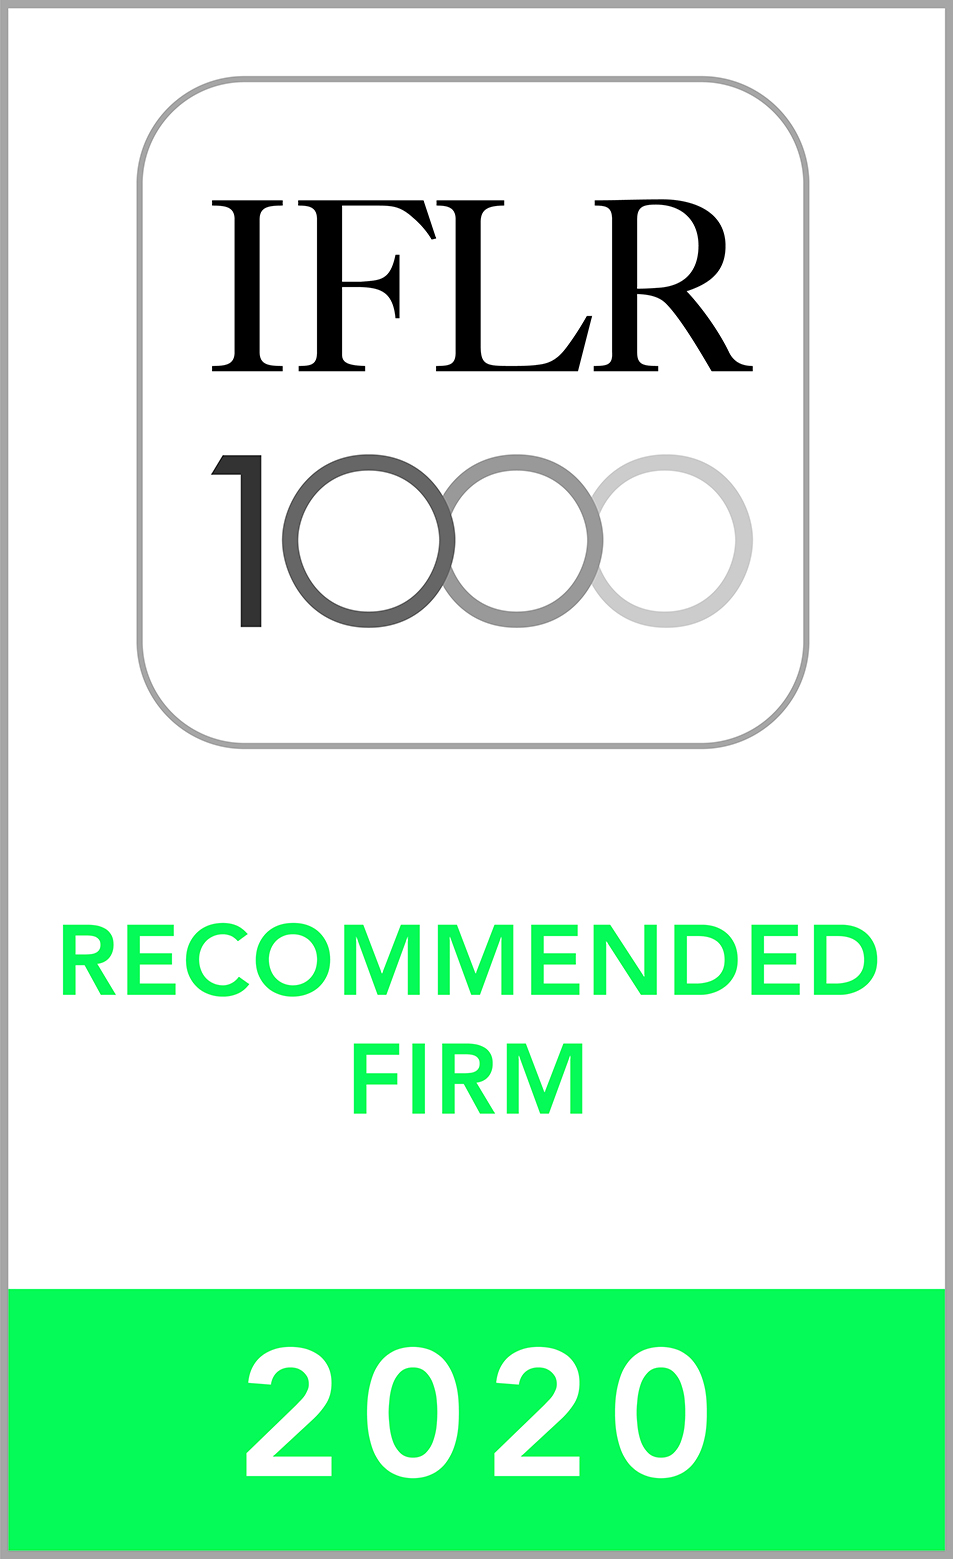 2020 - RECOMMENDED FIRM IN IFLR1000